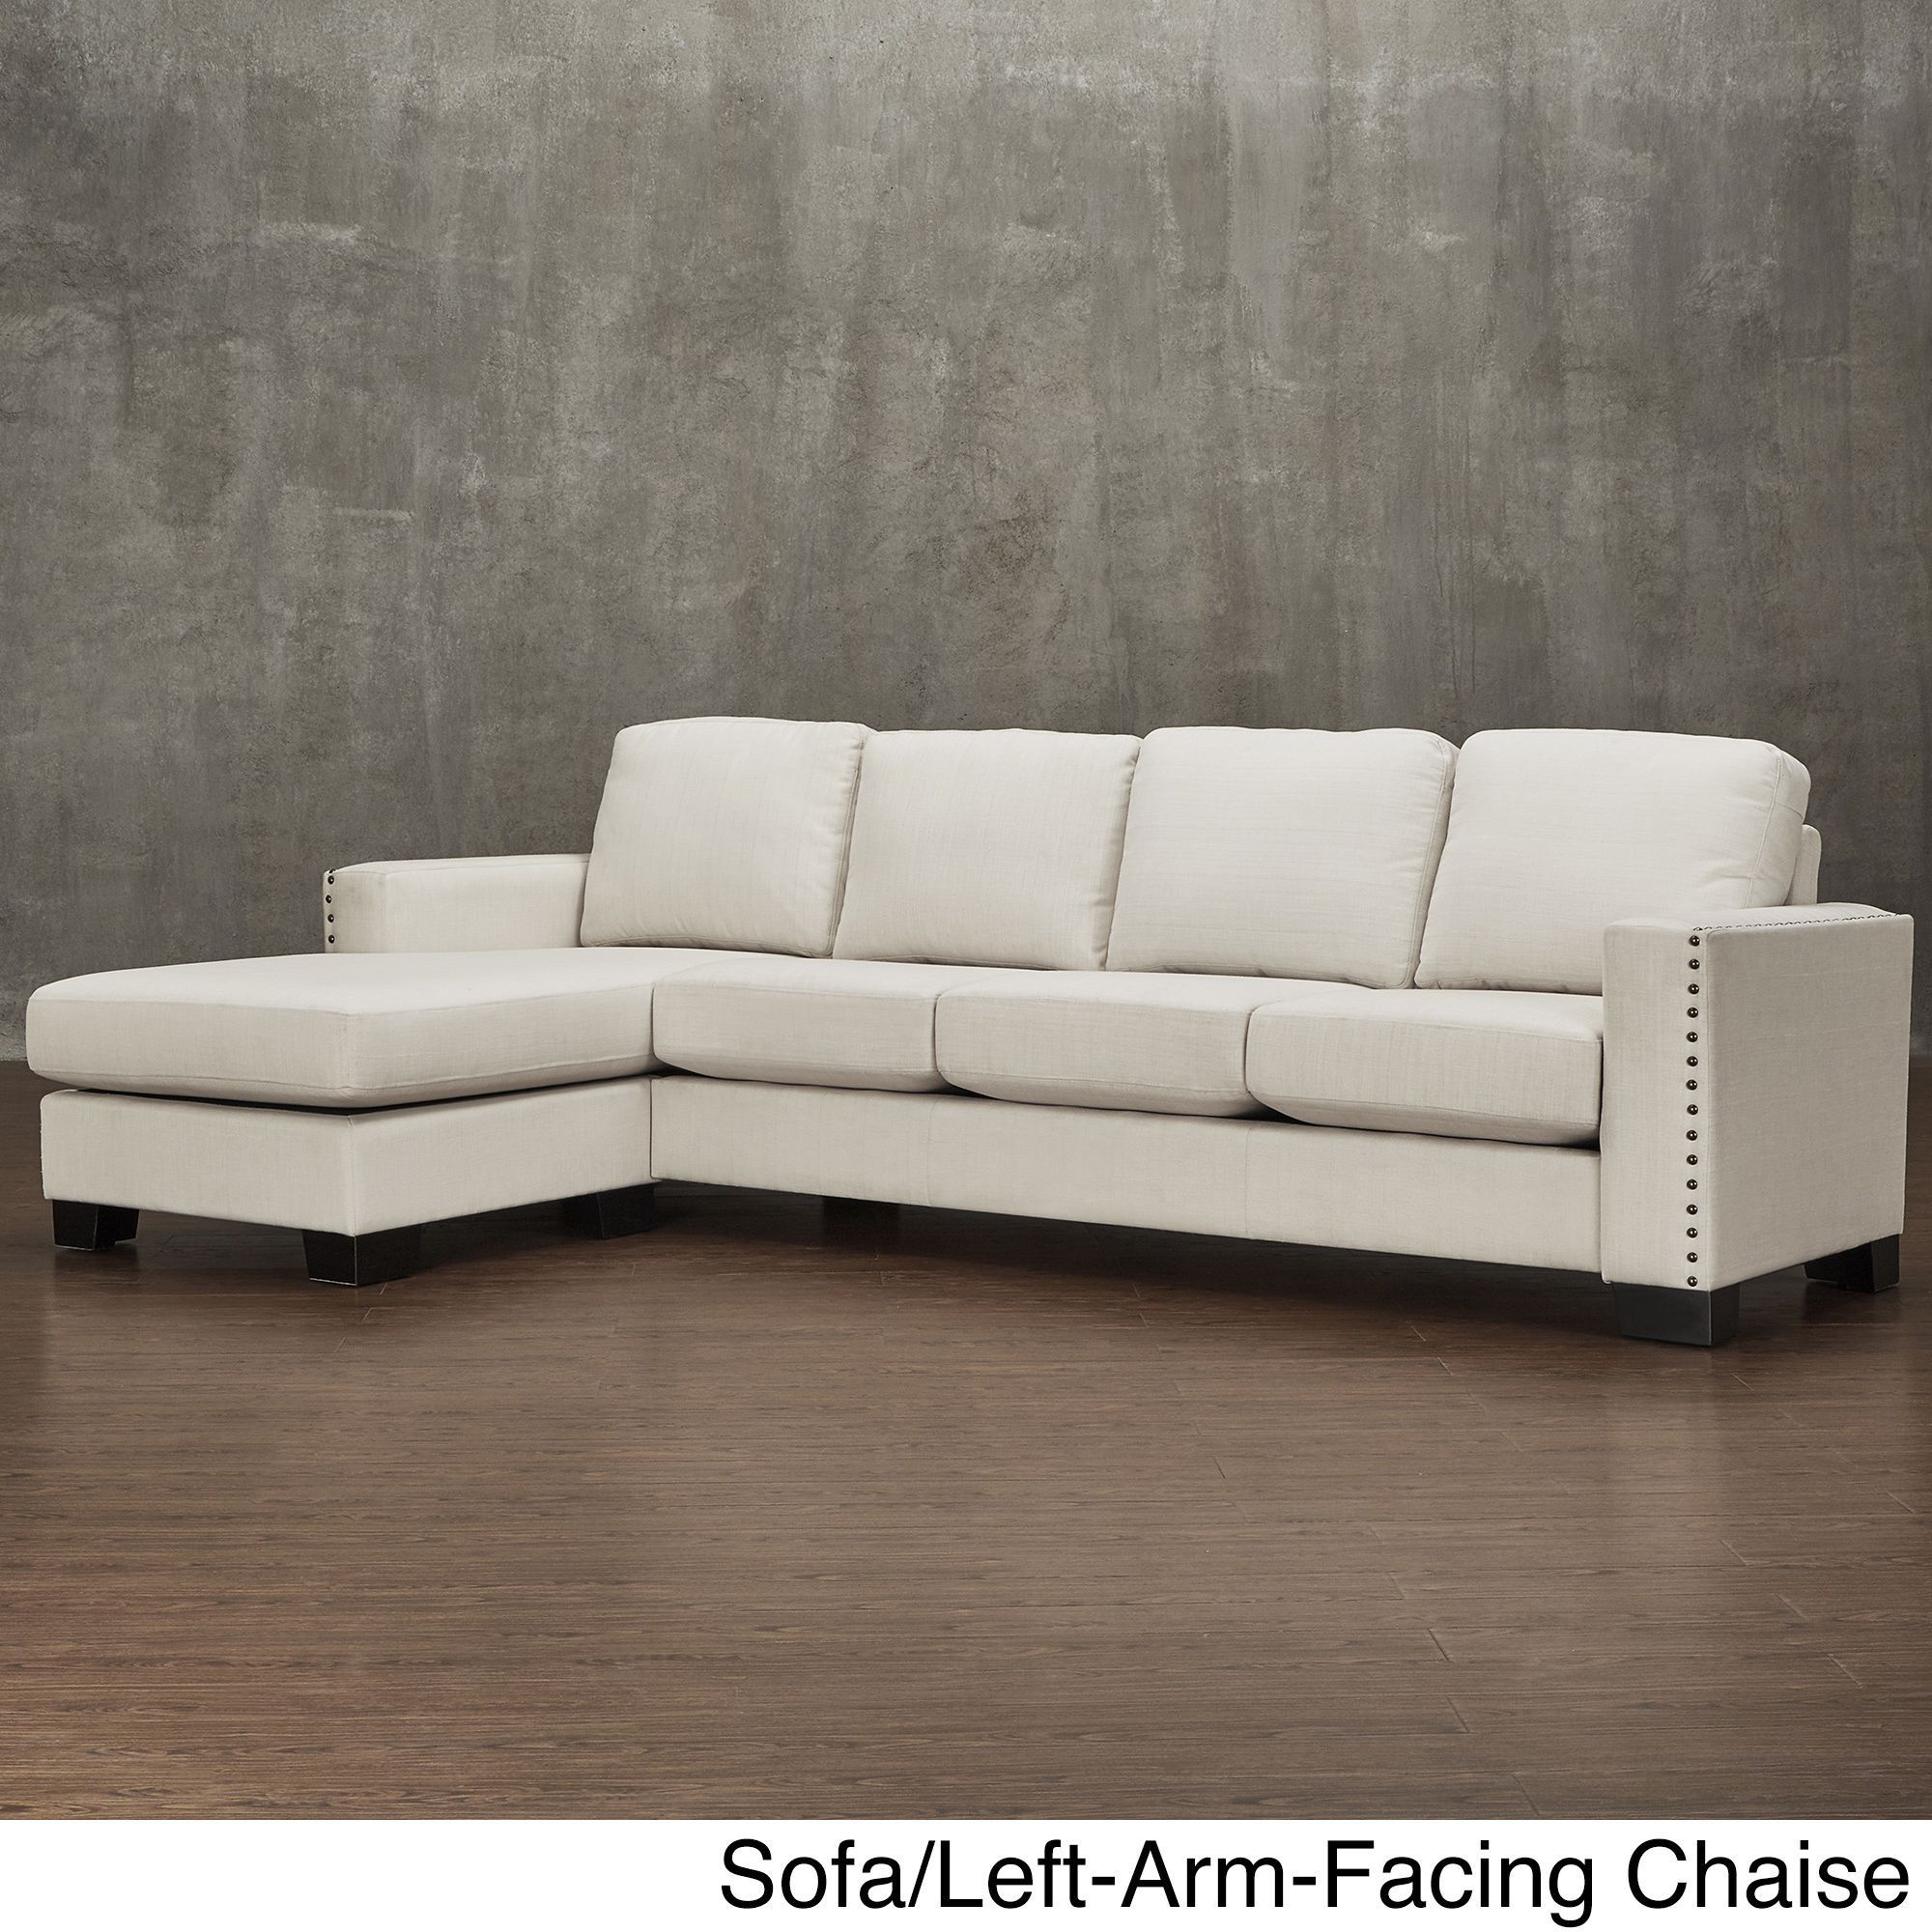 Torrington Linen Nailhead Track Arm L-shaped Configurable Chaise Sectional  by Inspire Q (Sofa with Left-Arm-Facing Chaise), White (Fabric)